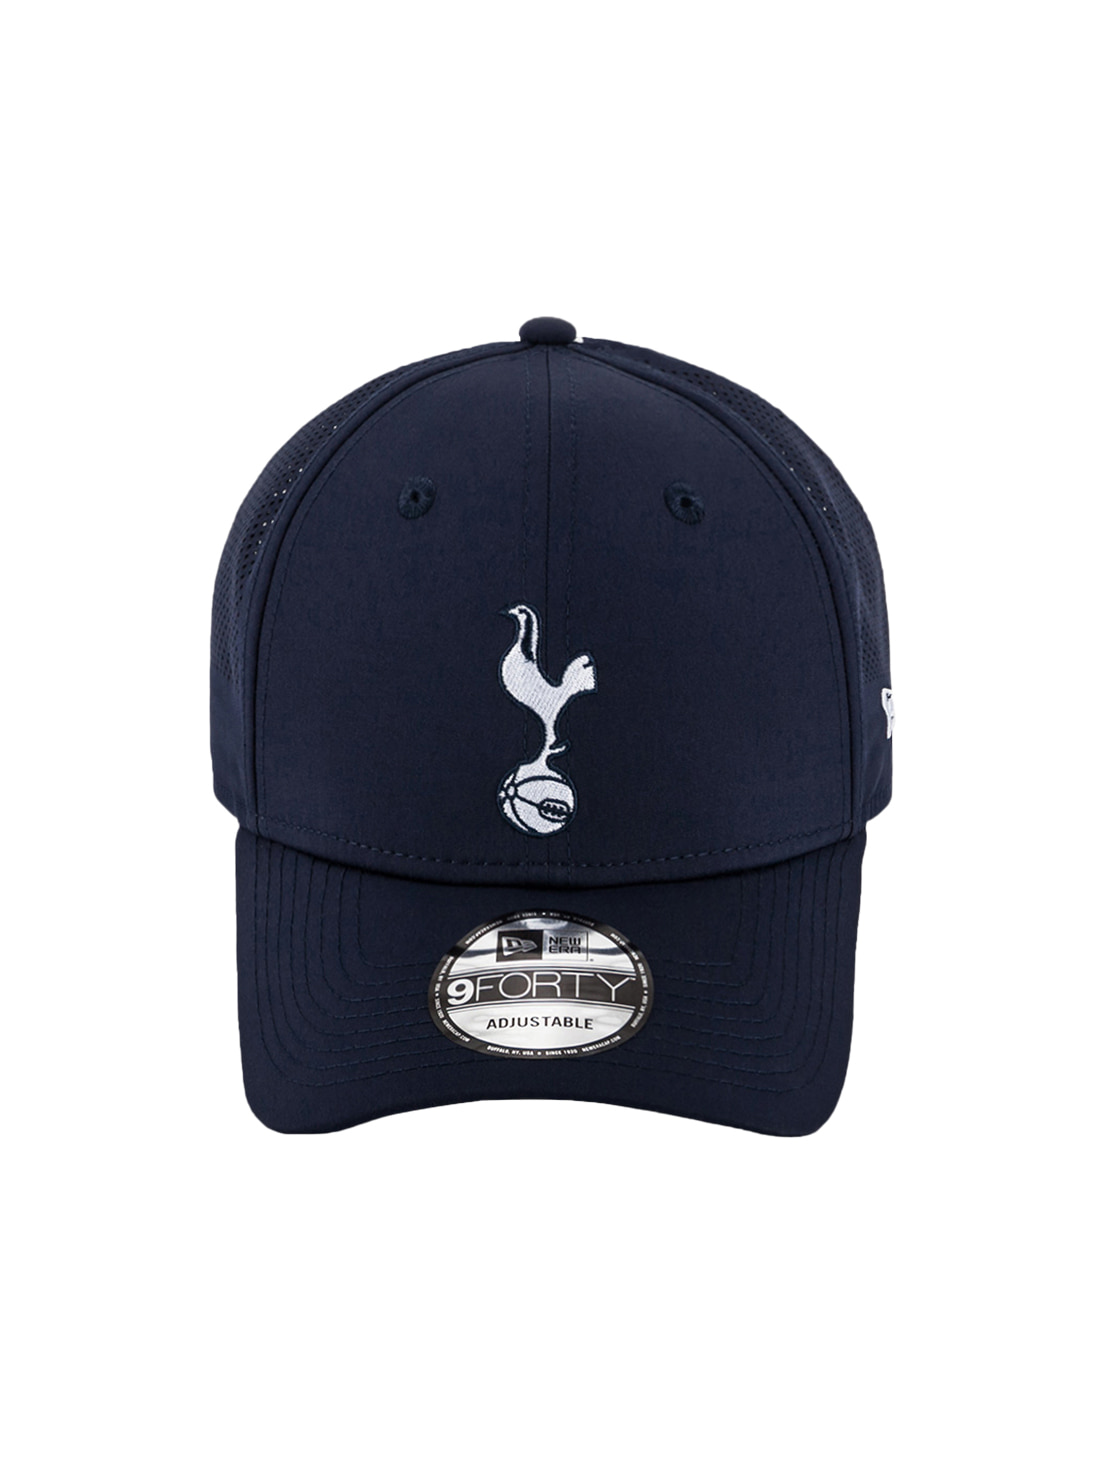 TOTTENHAM PERFORATED MESH BALL CAP - NAVY